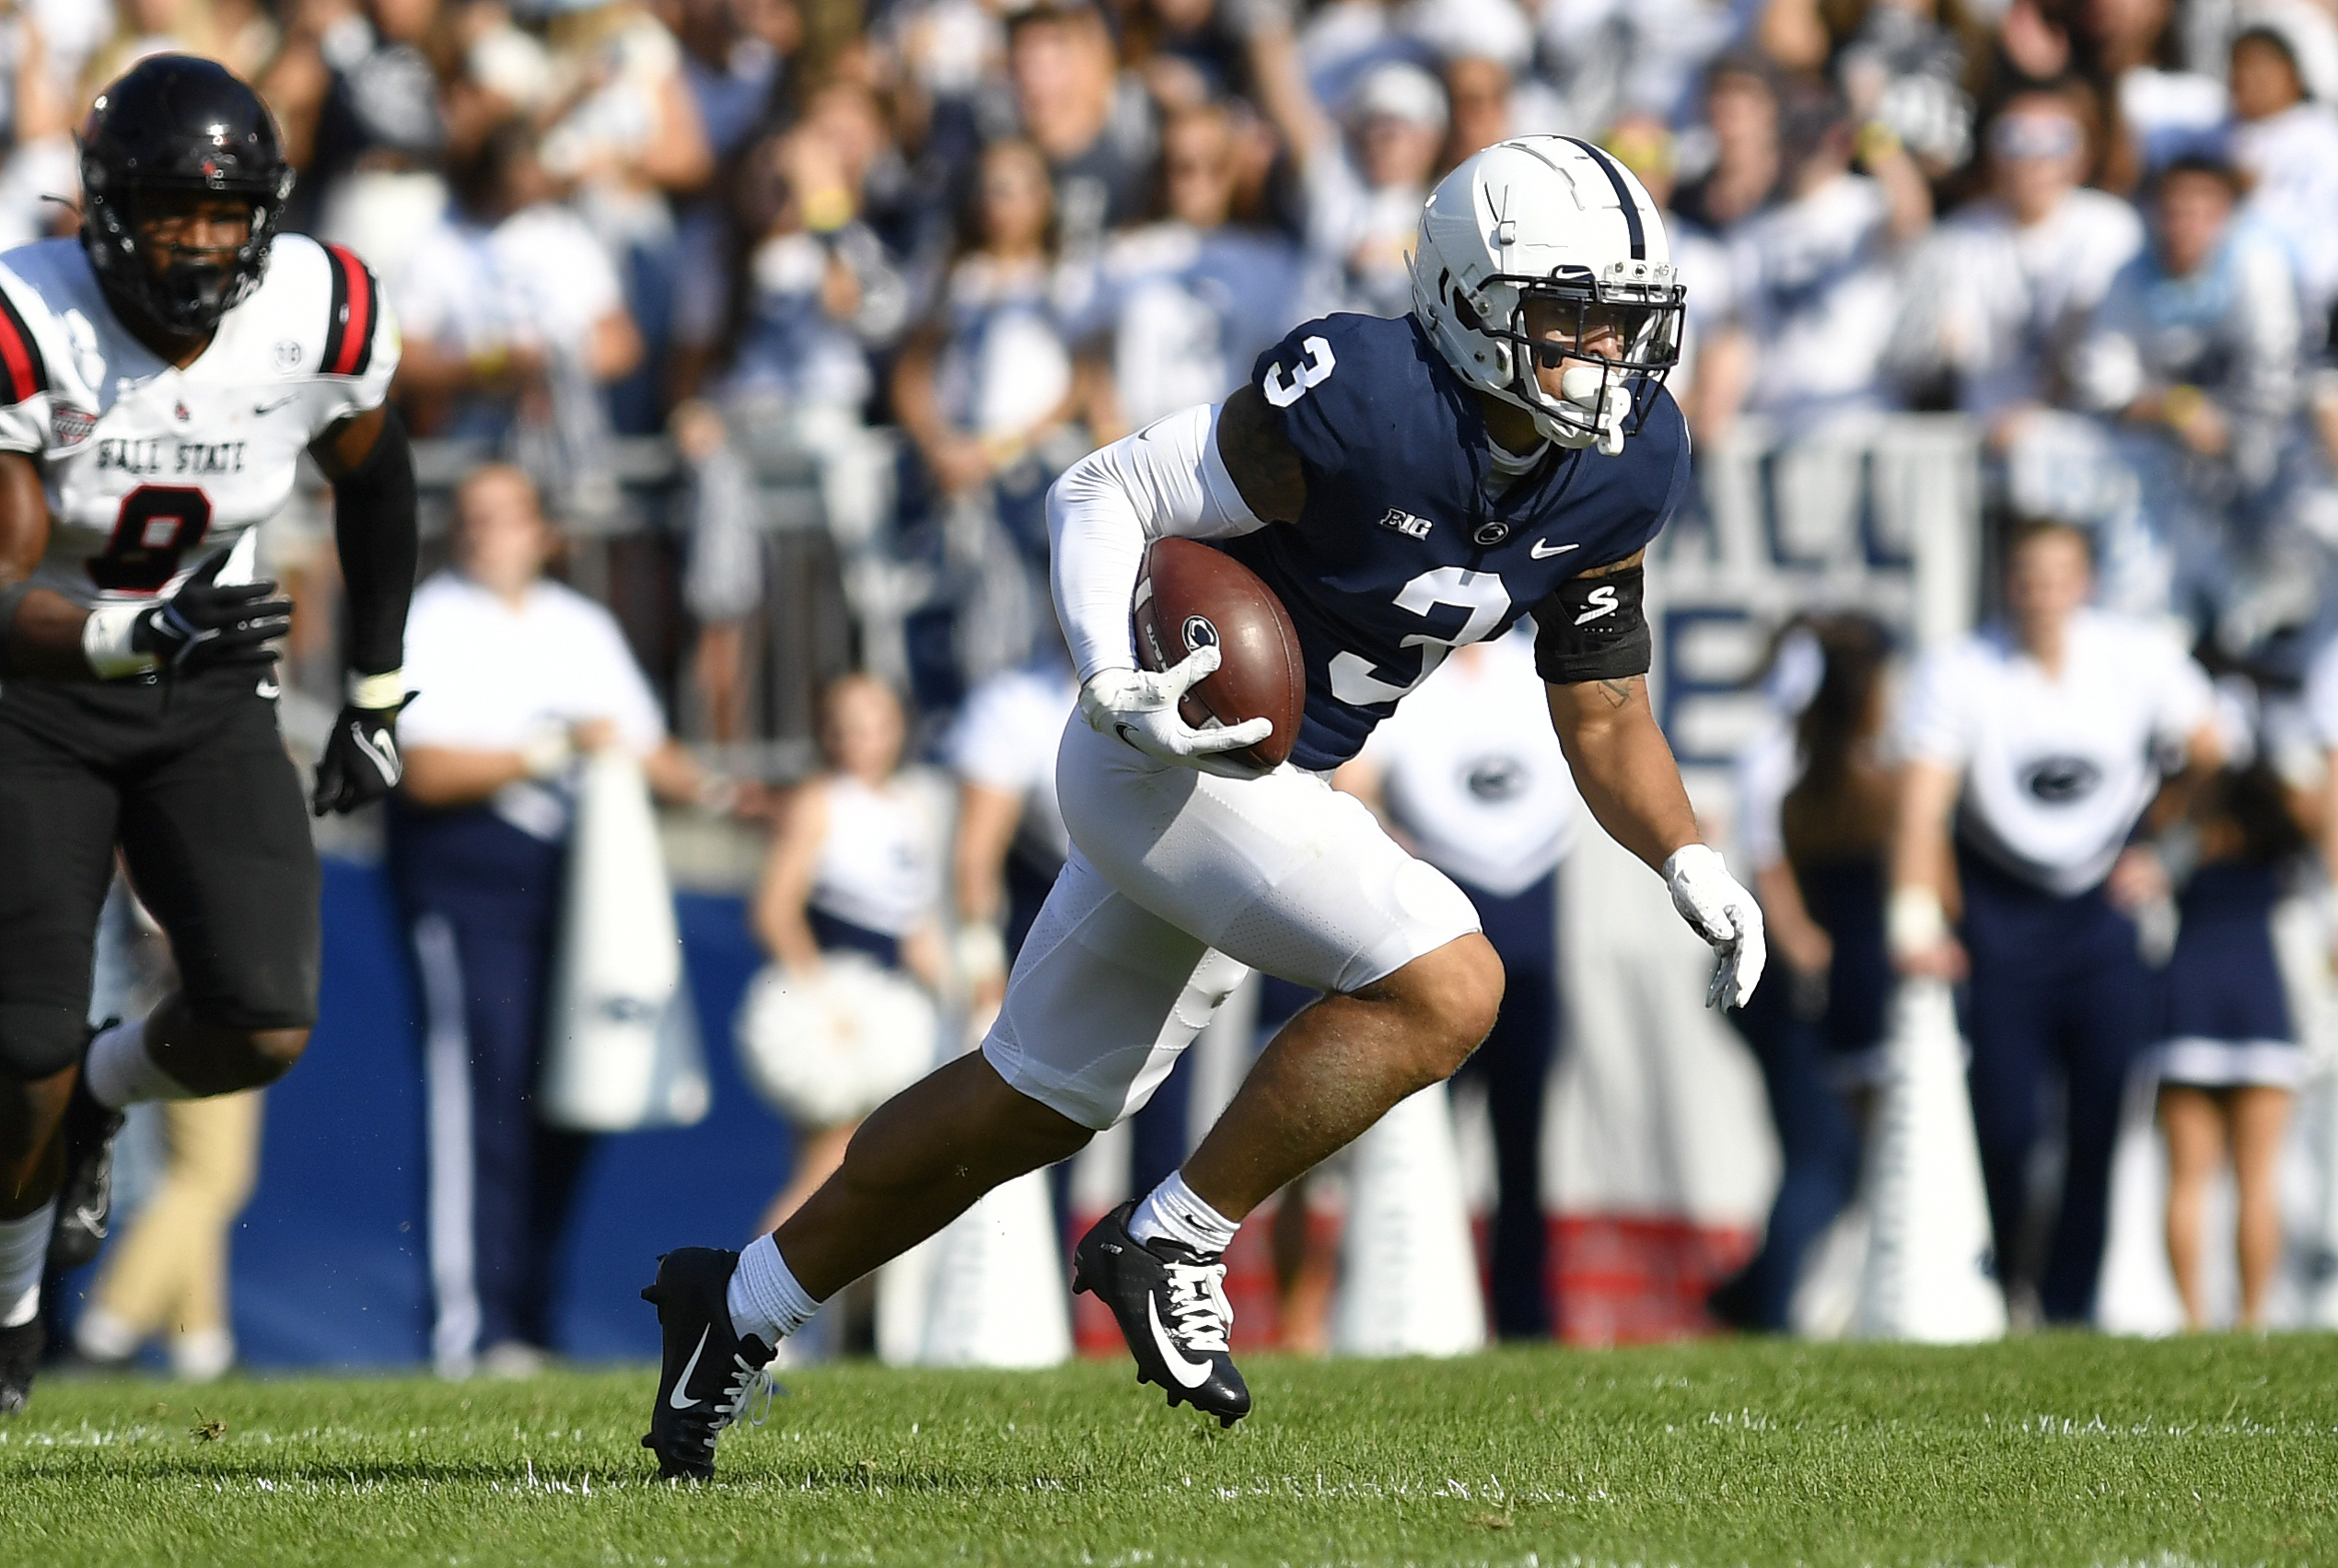 COLLEGE FOOTBALL: SEP 11 Ball State at Penn State